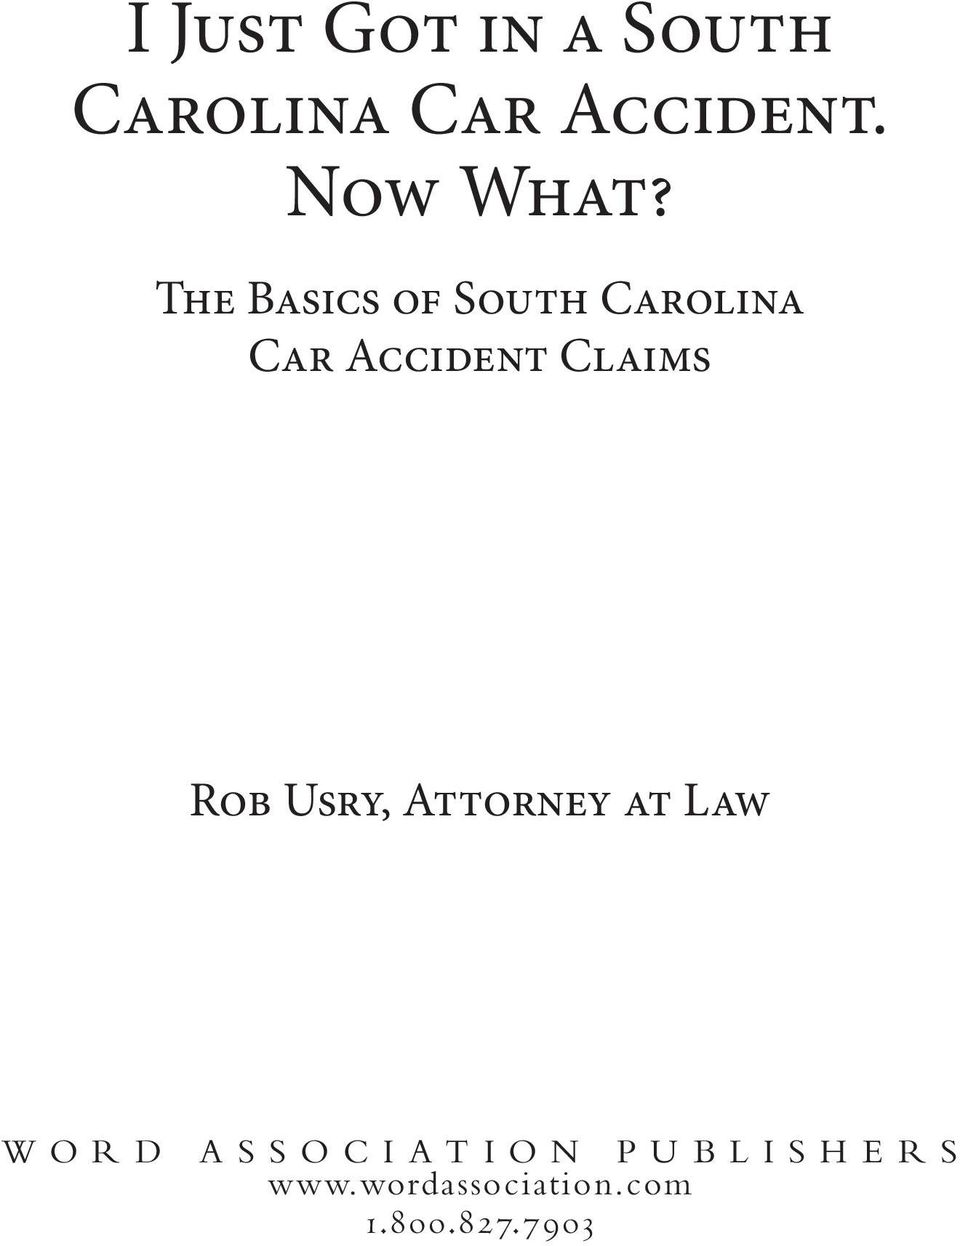 The Basics of South Carolina Car Accident Claims